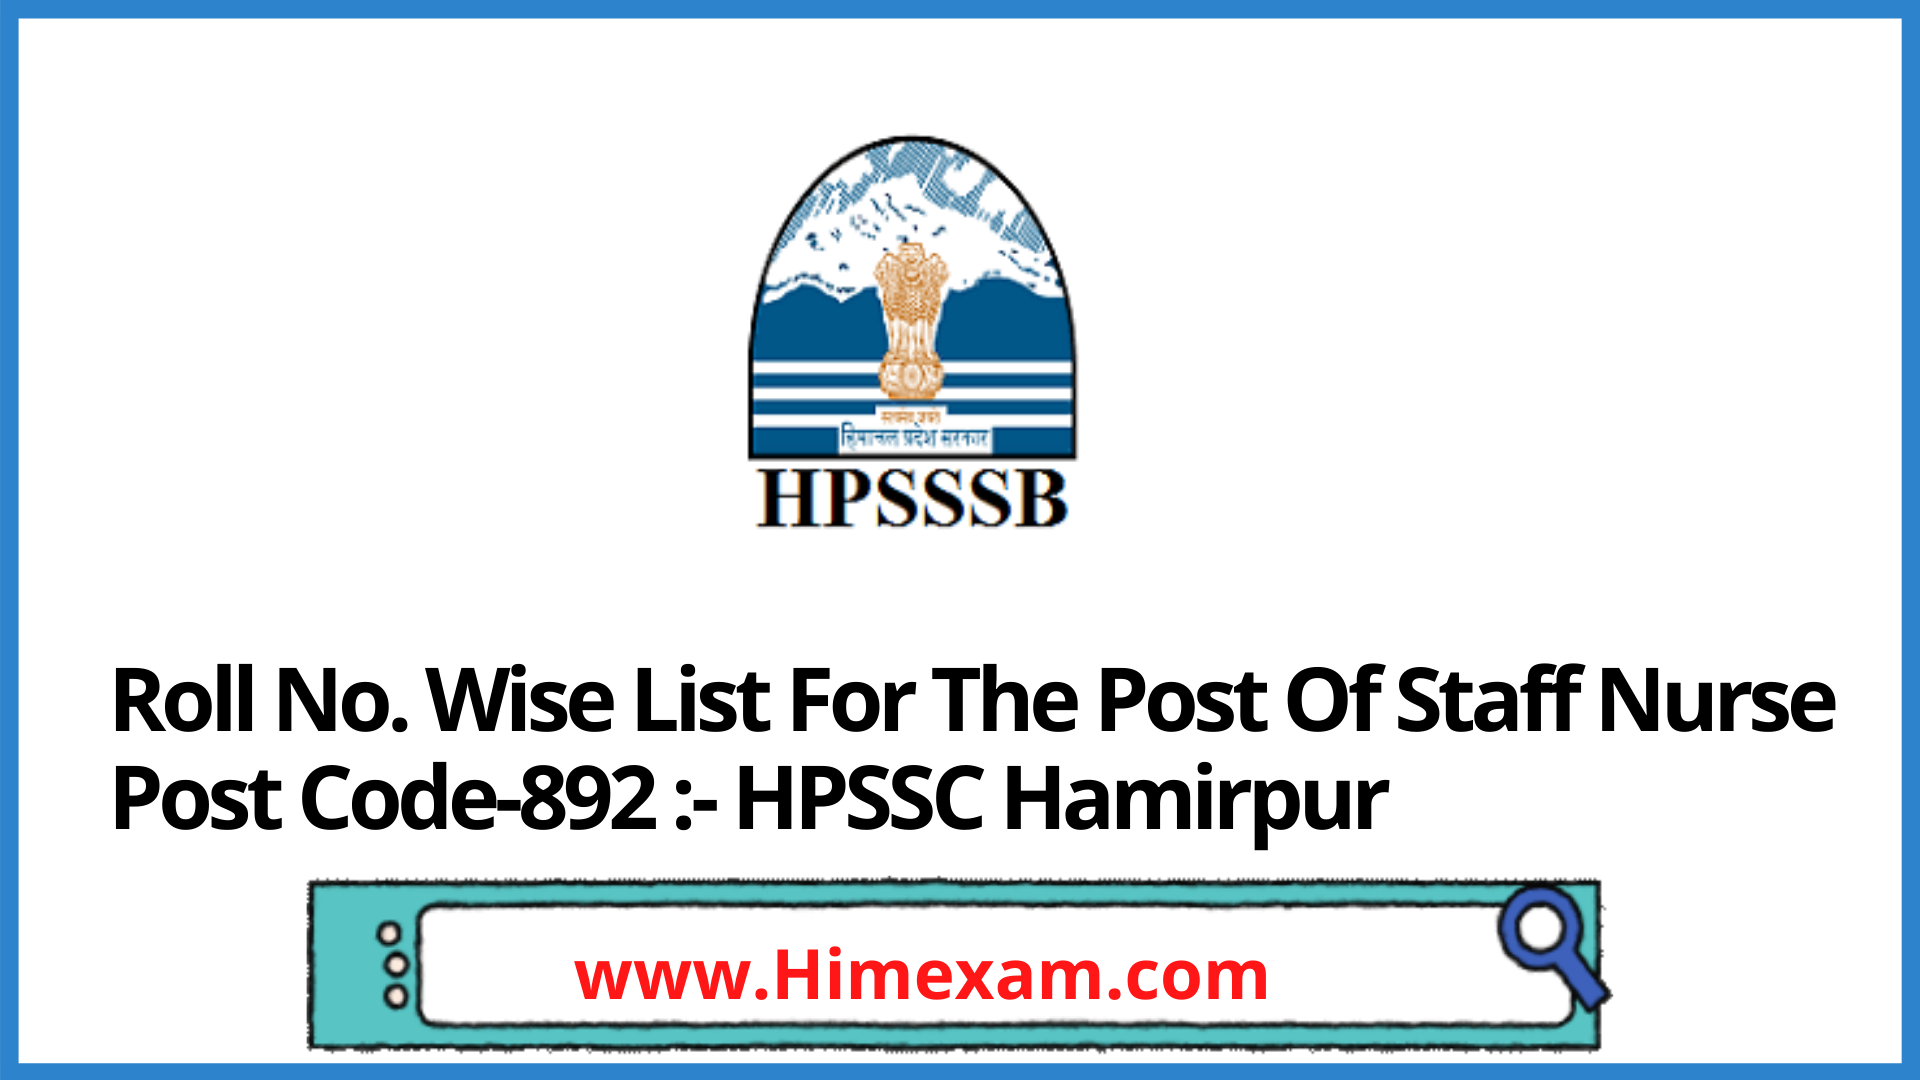 Roll No. Wise List For The Post Of Staff Nurse Post Code-892 :- HPSSC Hamirpur